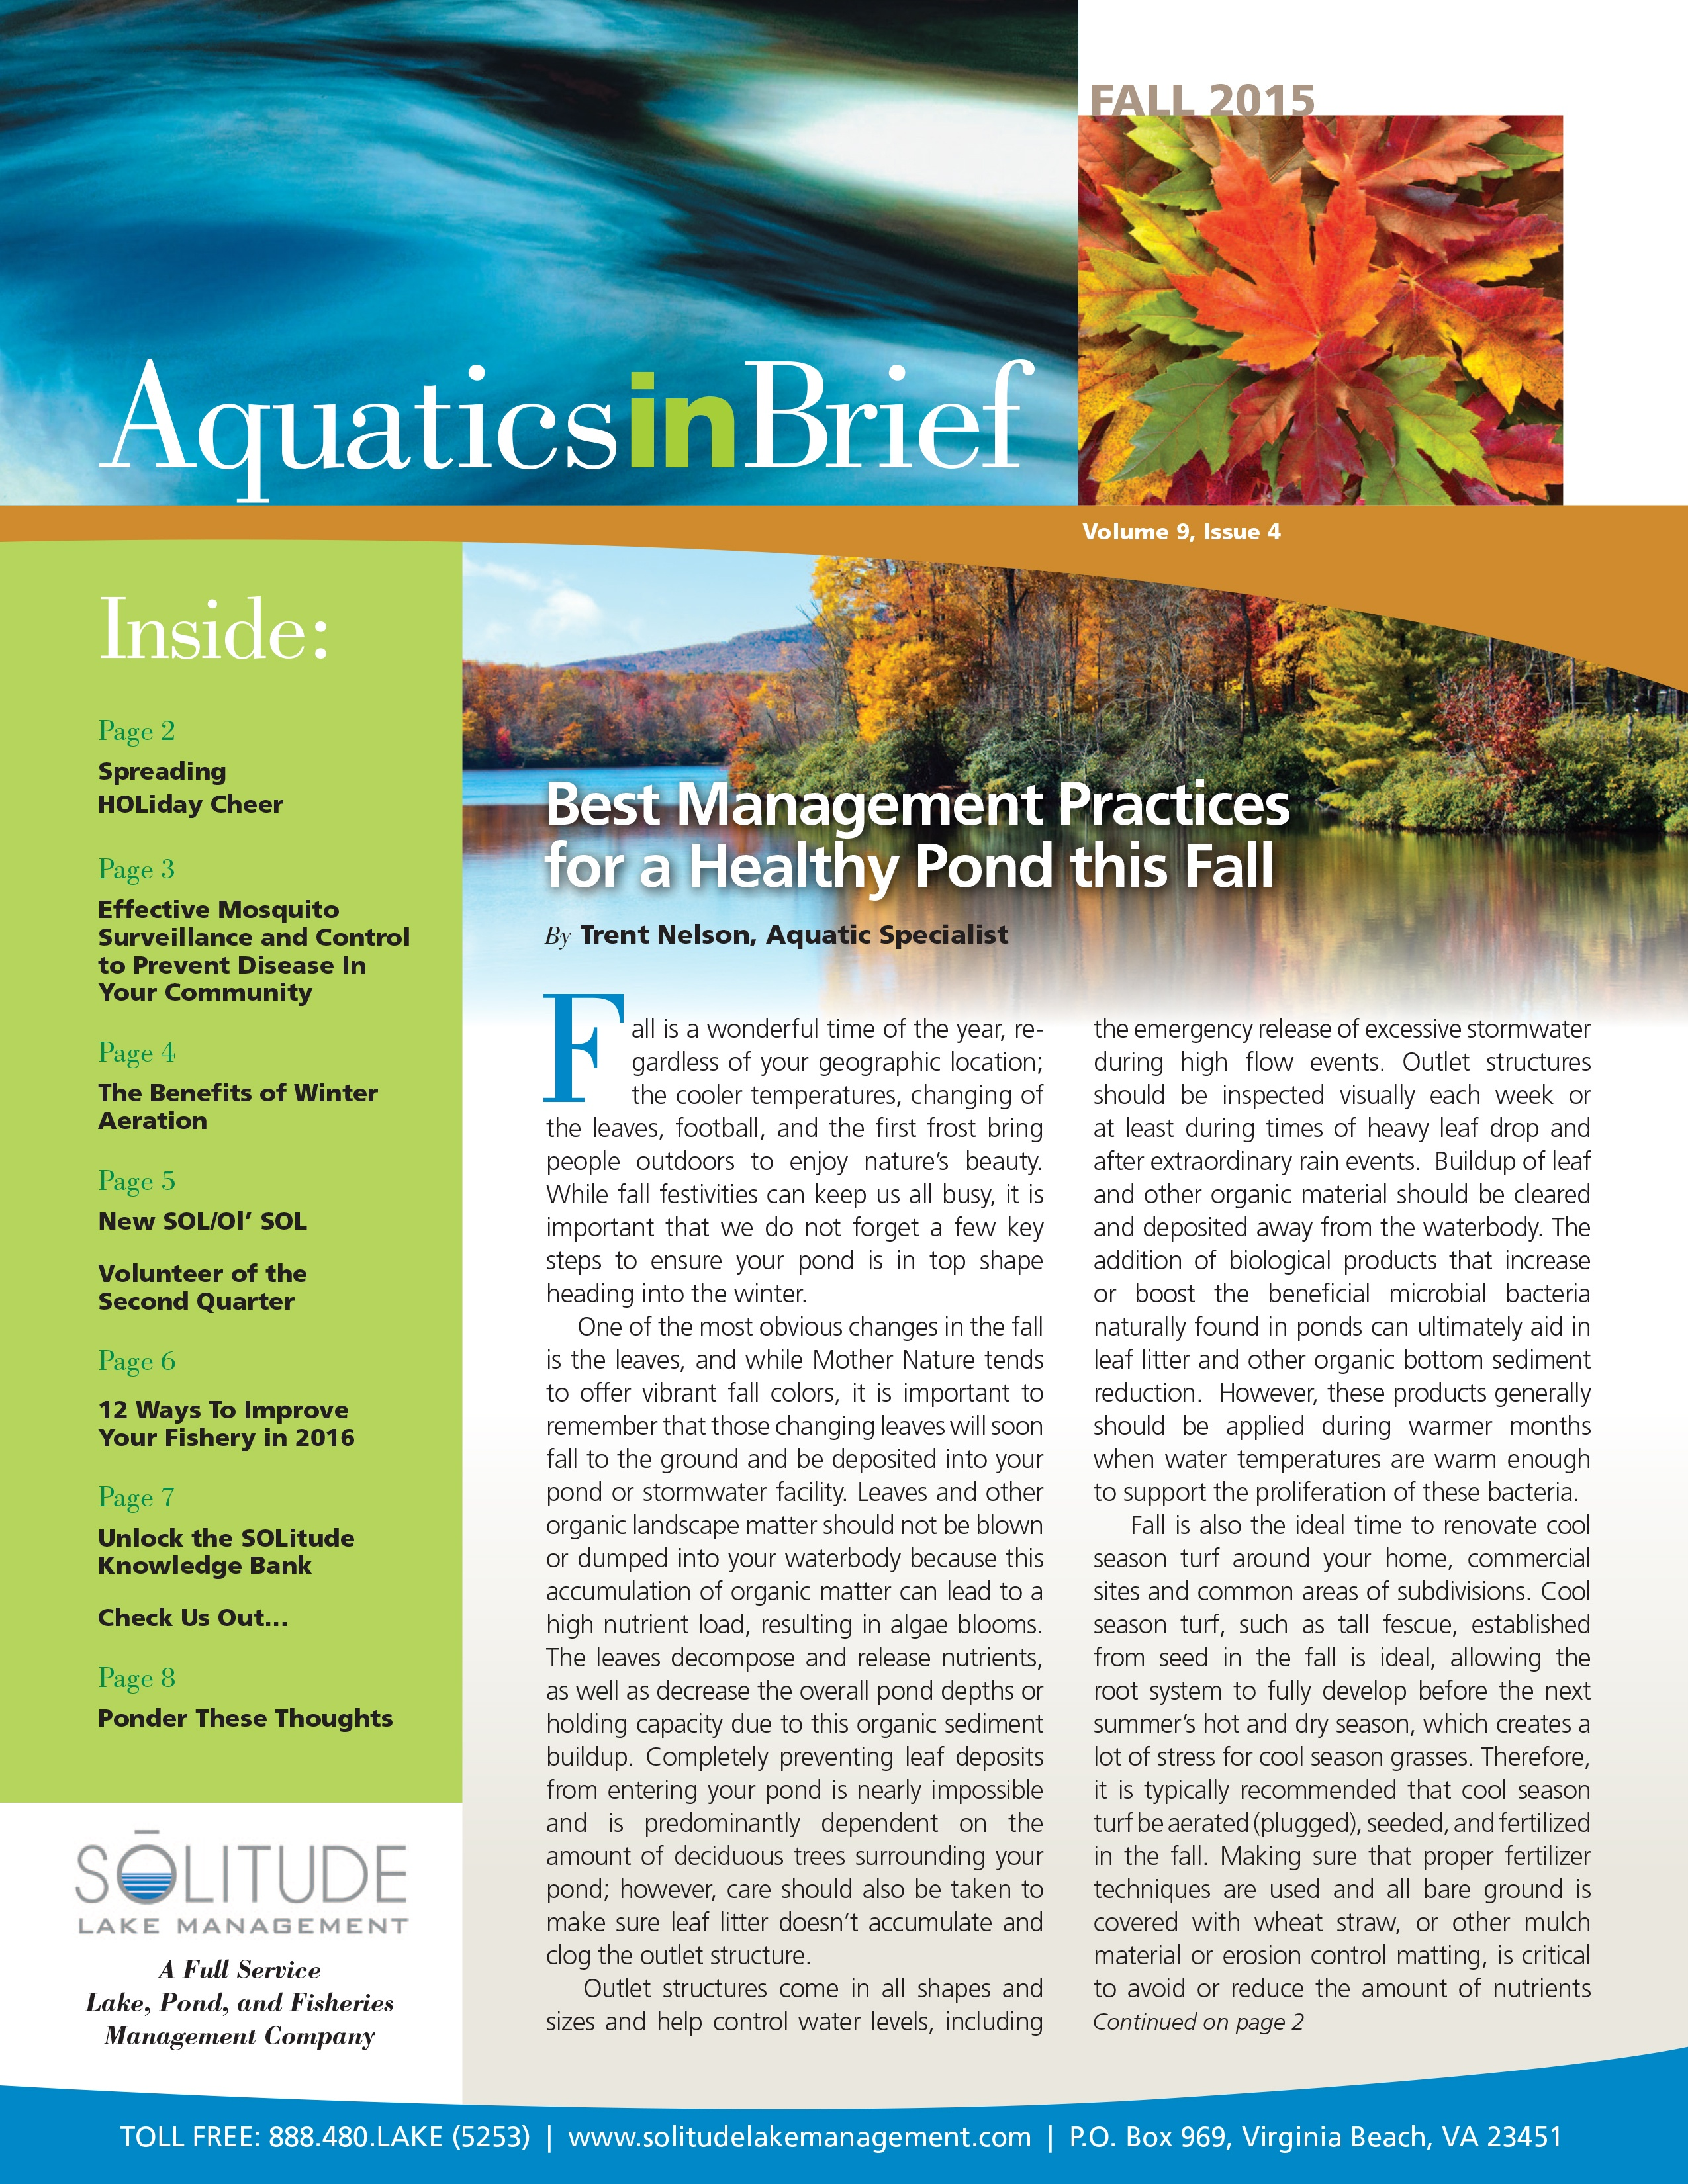 aquatics-in-brief-fall-2015